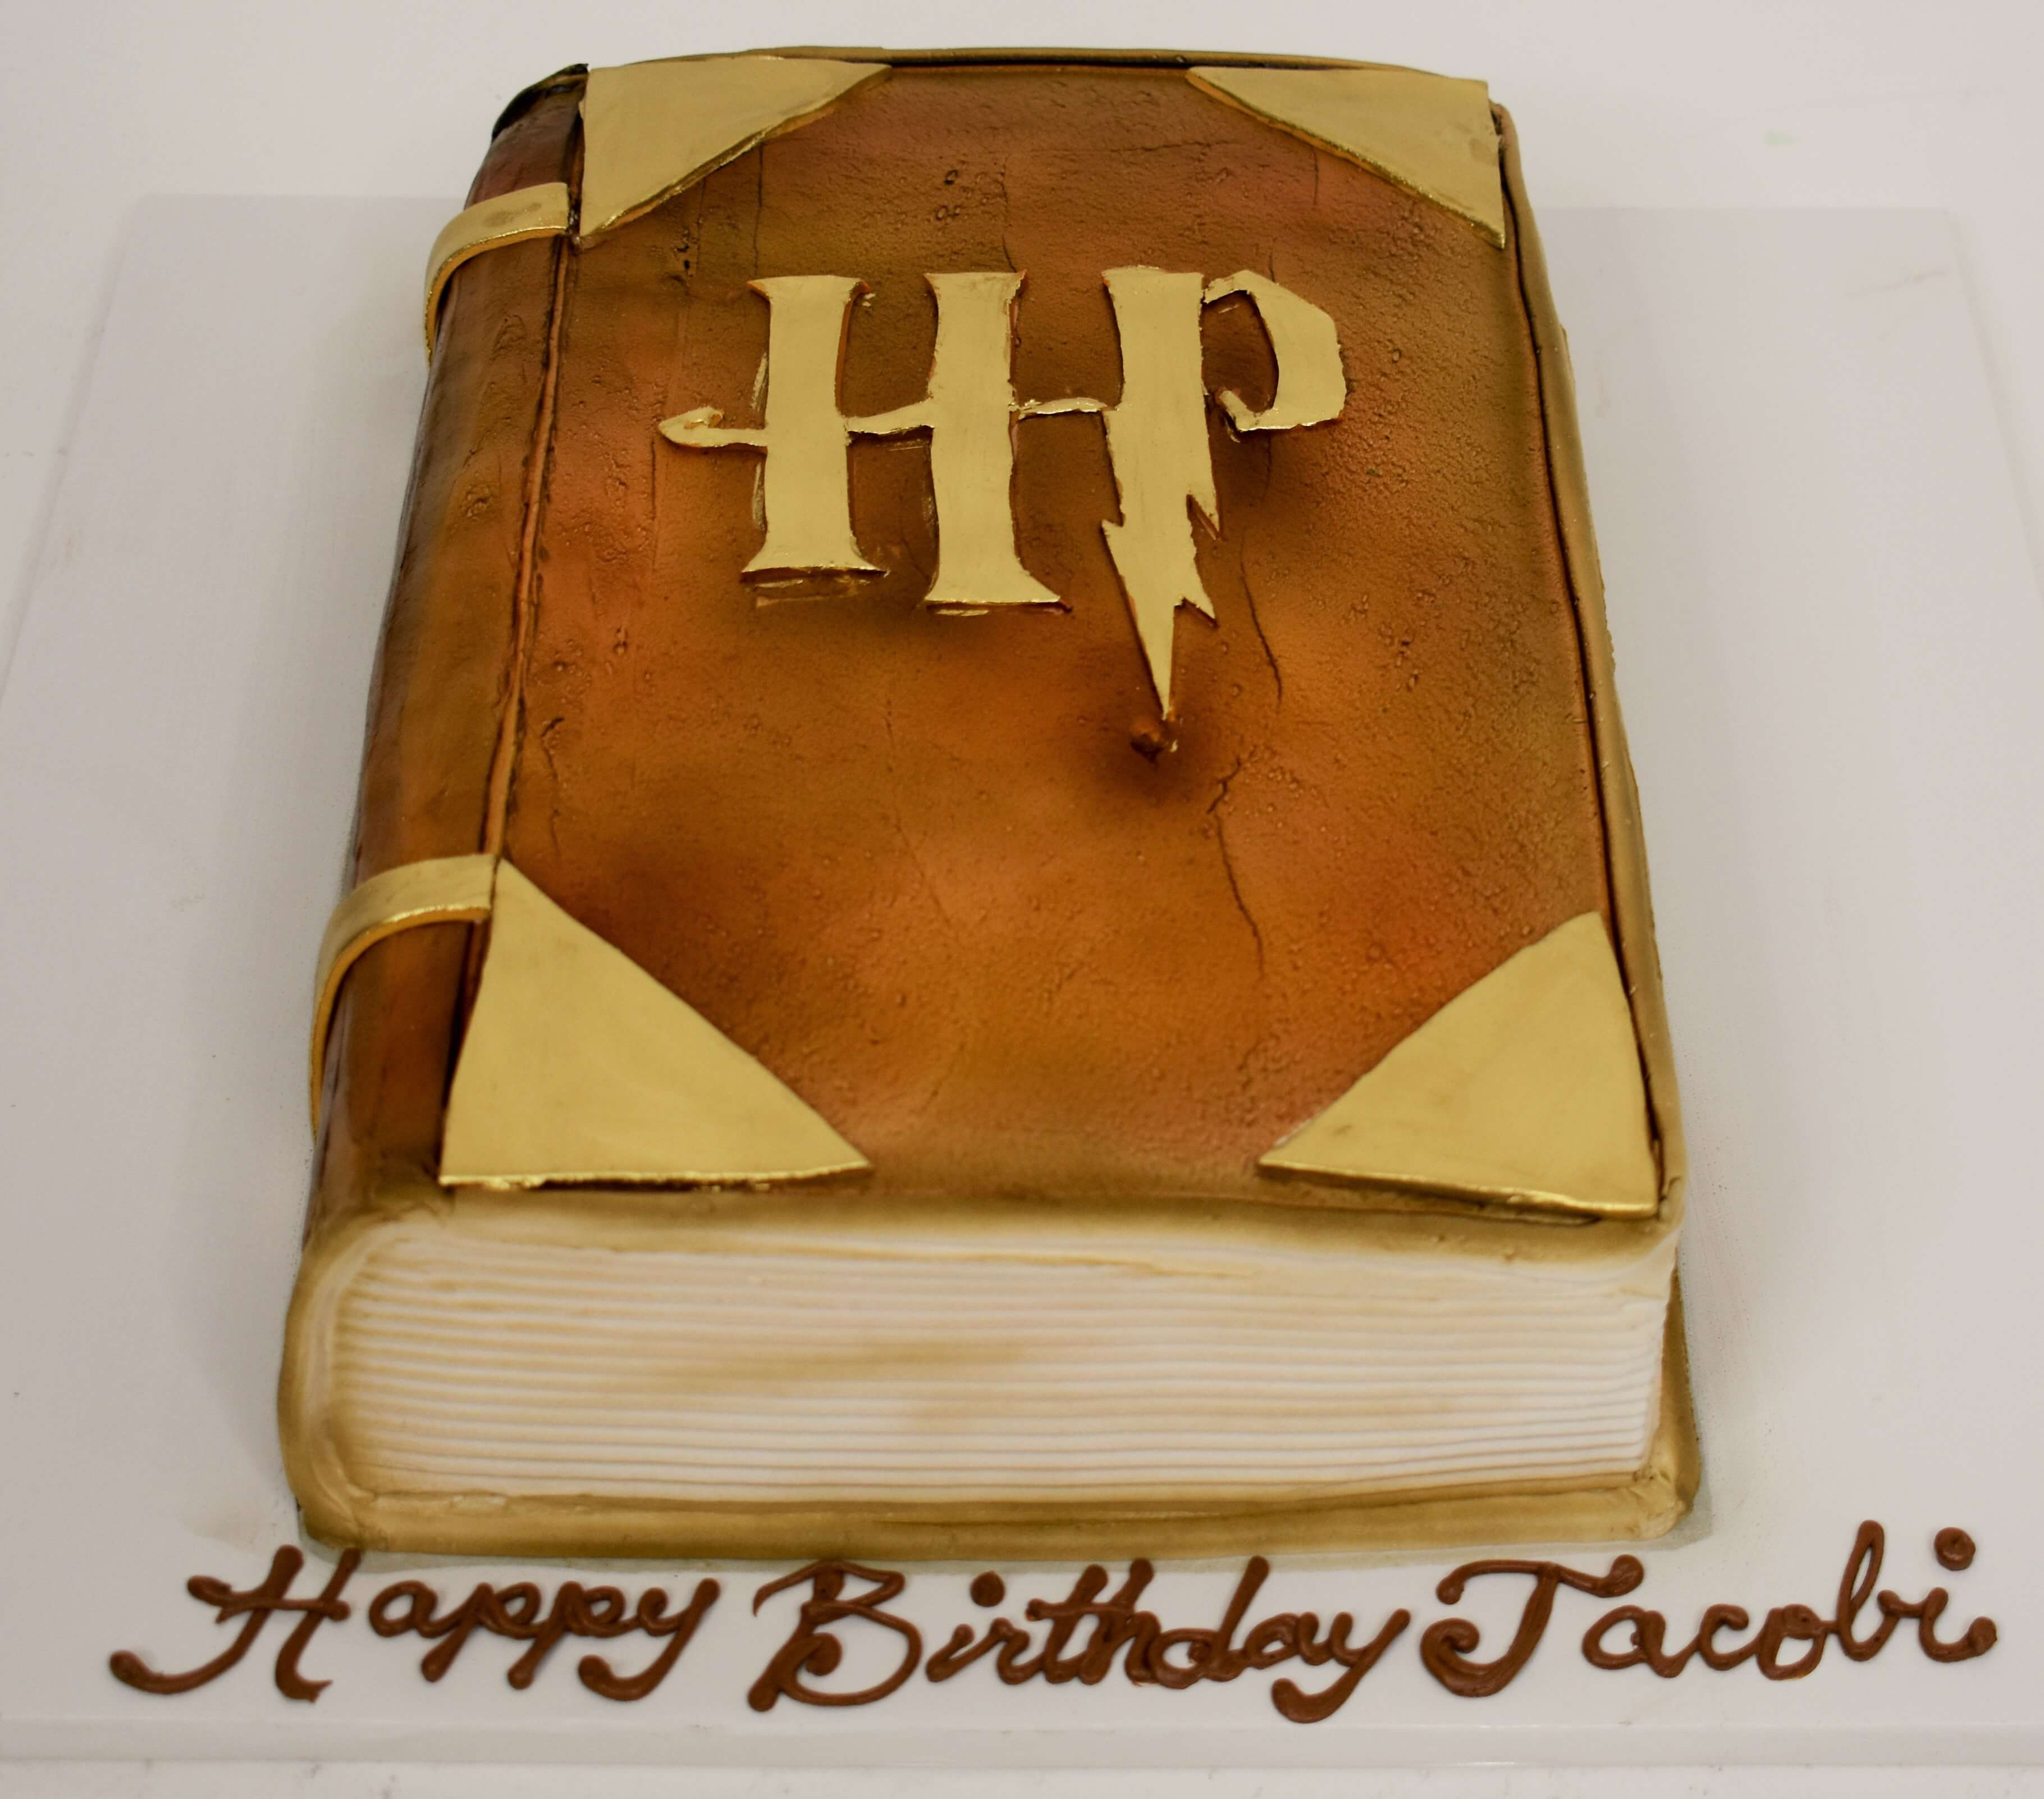 McArthur's Bakery Custom Cake with a Harry Potter Book Cut Out